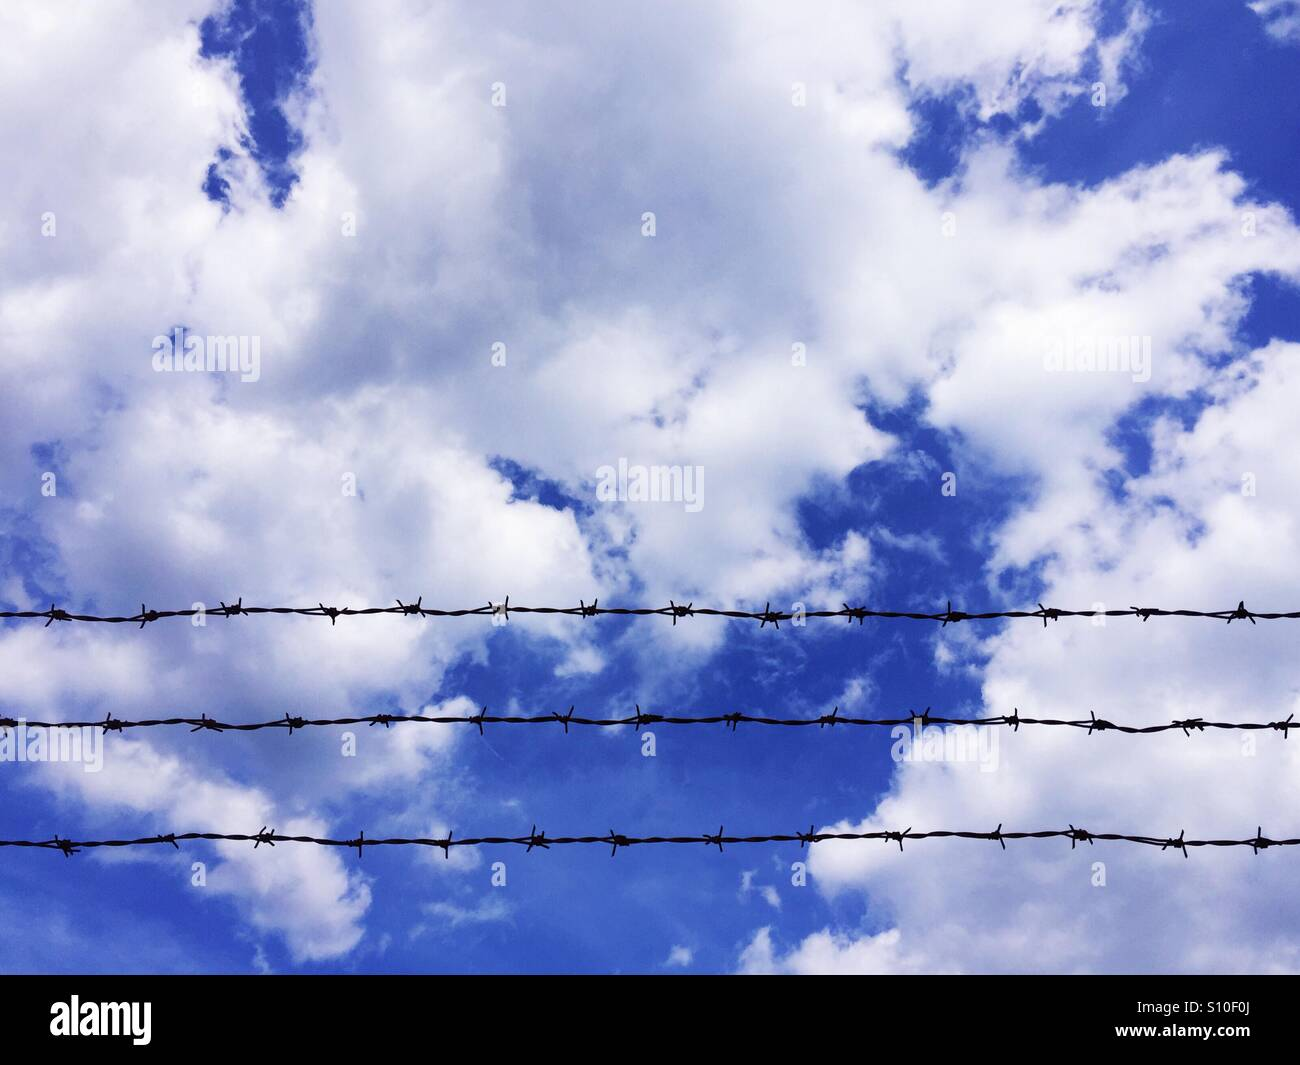 Barbed wire on cloudy sky background - Stock Image